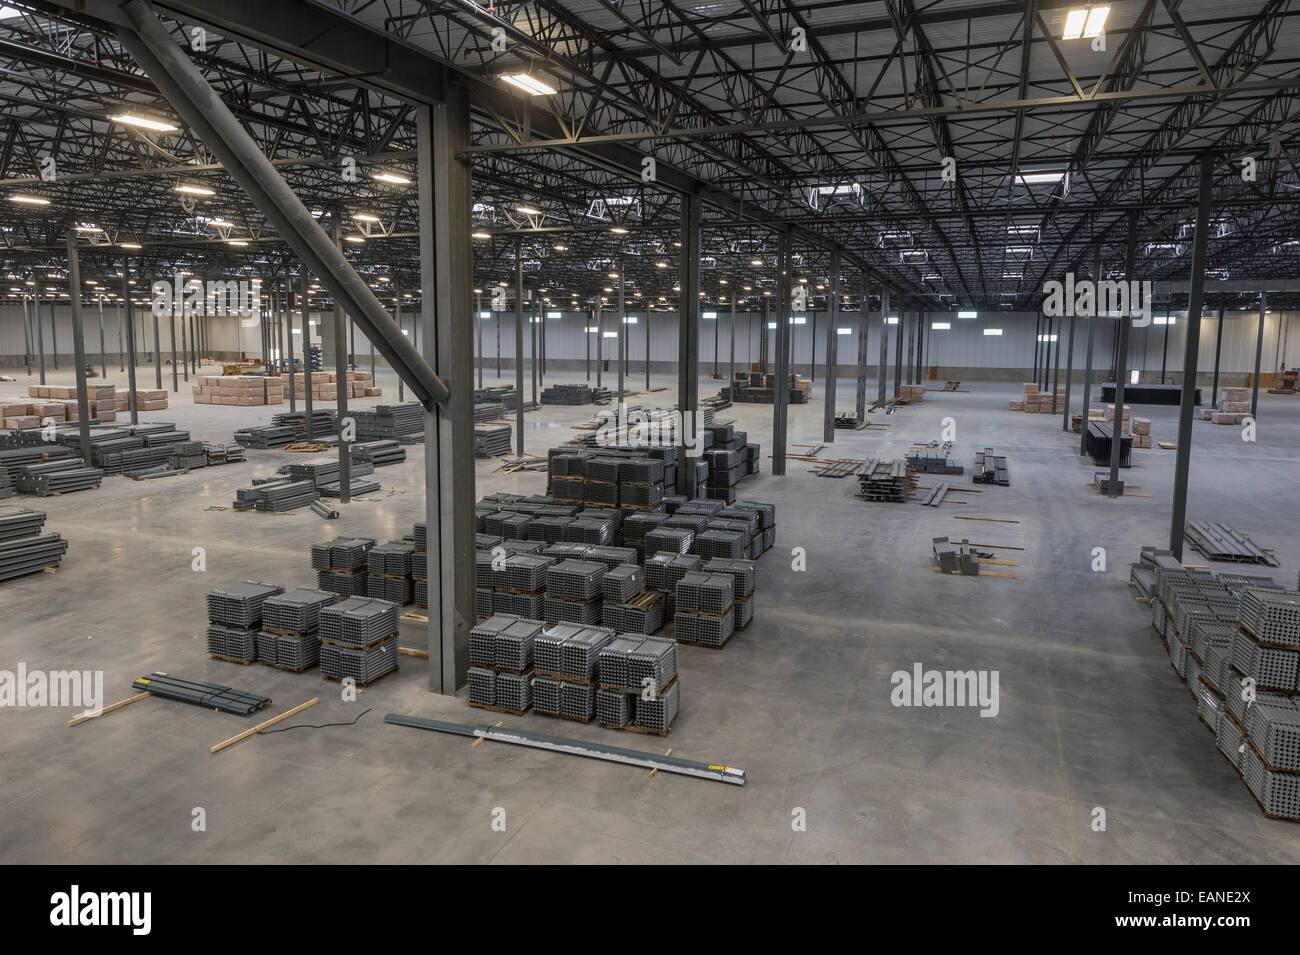 Large Warehouse Interior, Aerial View   Stock Image